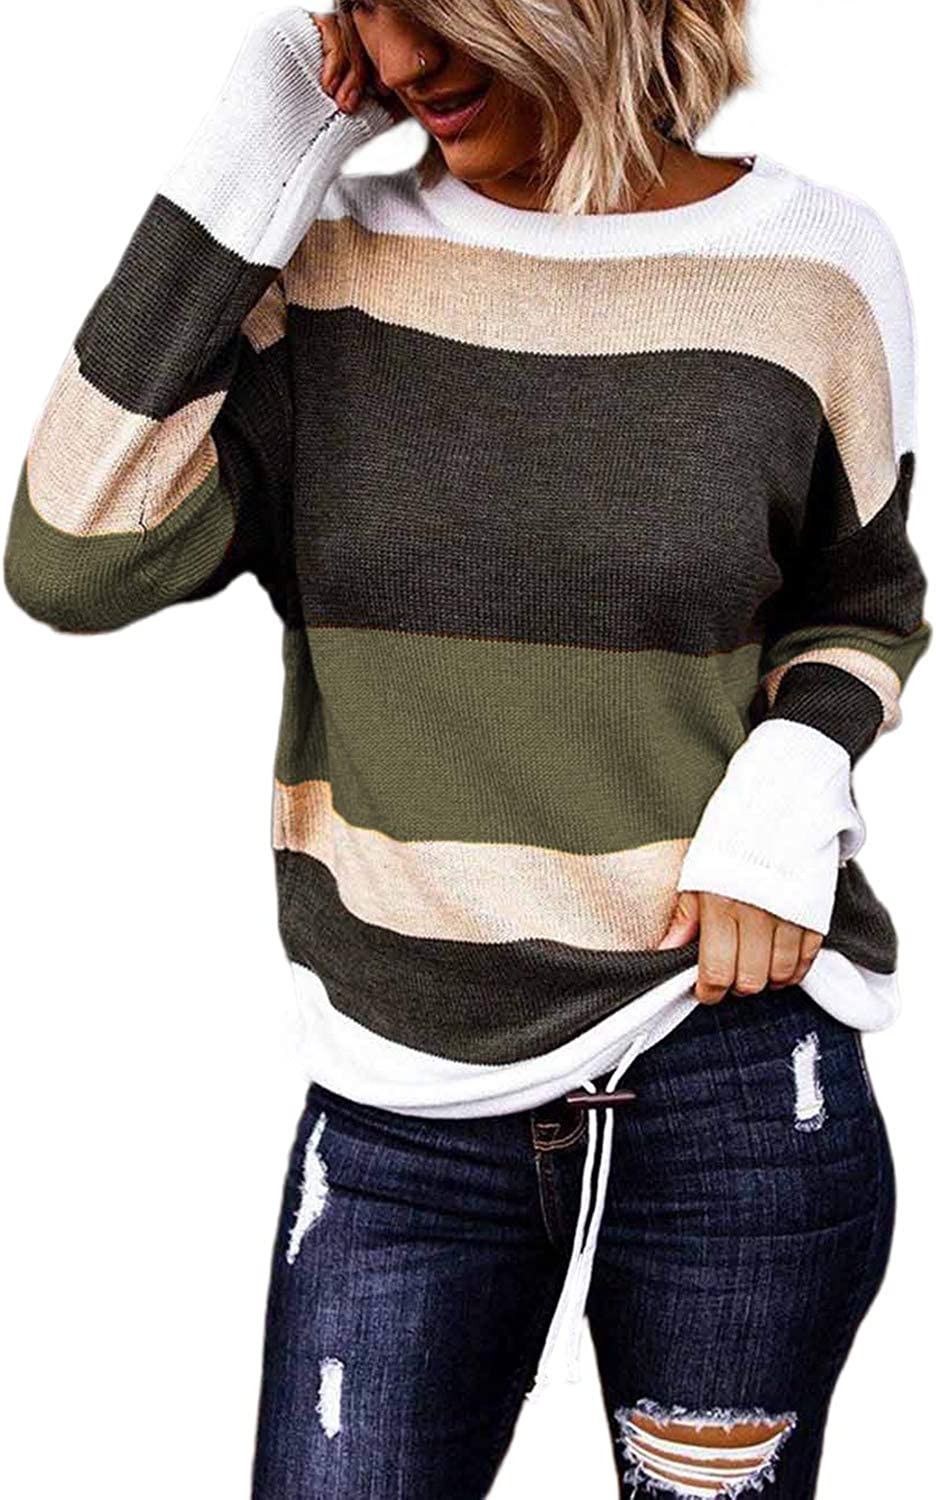 Paitluc Striped Sweater Women's Round Neck Knitted Long Sleeve Color Block Drawstring Hem Pullover Sweaters